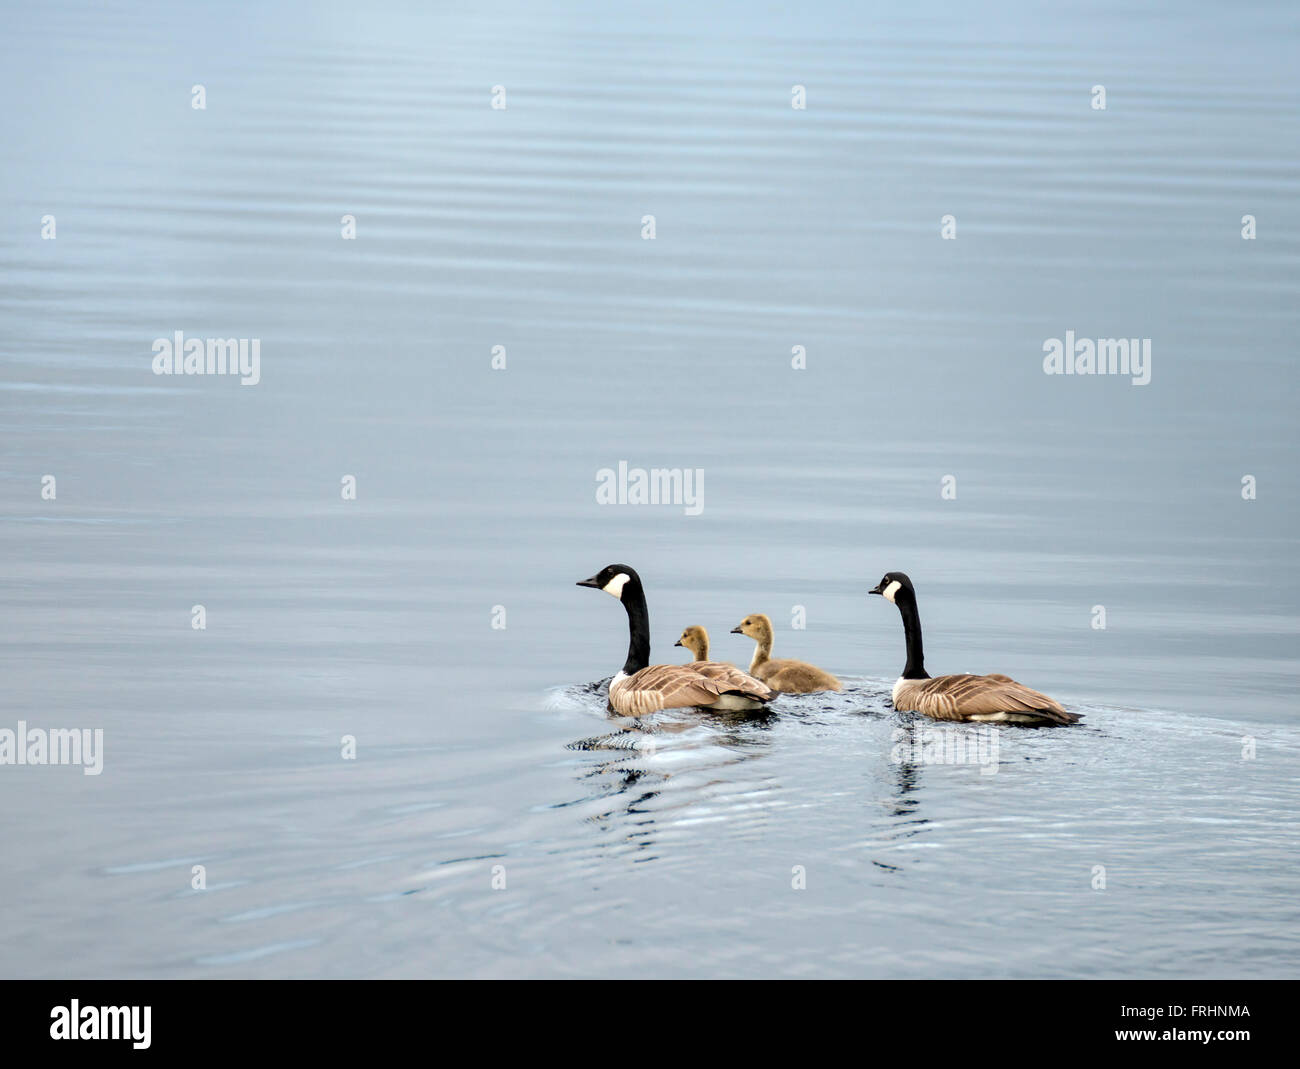 Canada goose with chicks - Stock Image